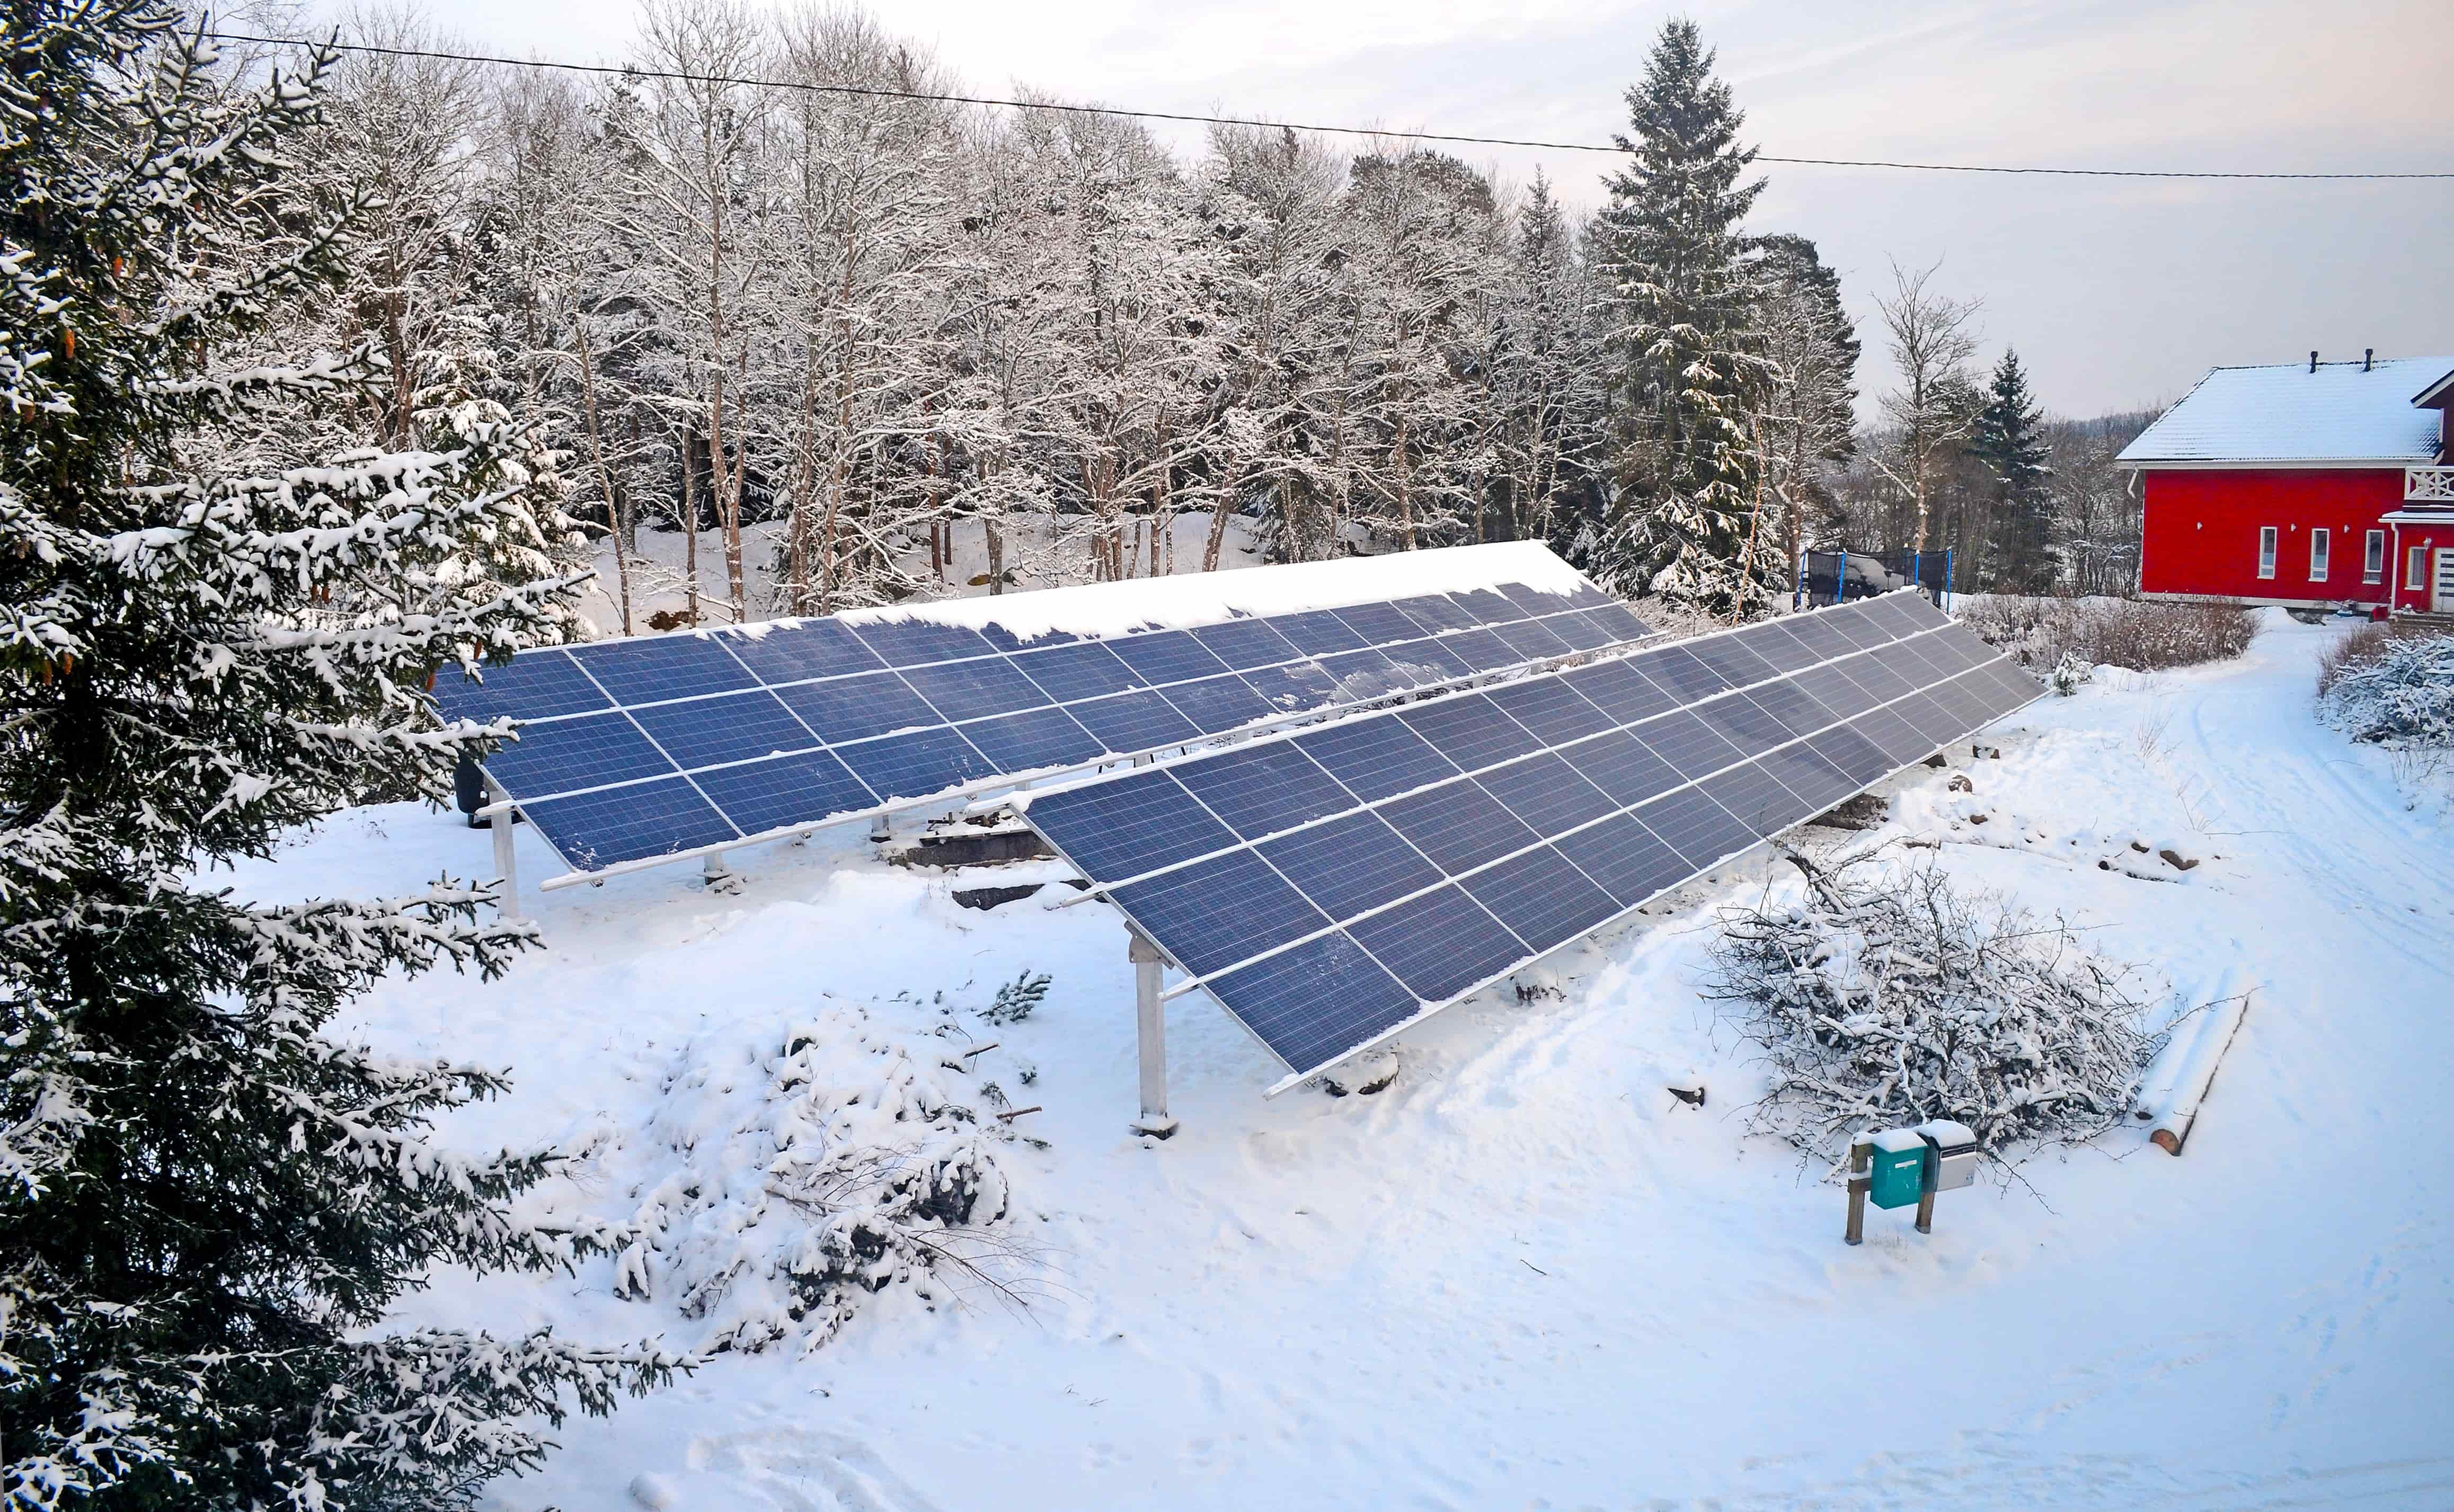 How do solar panels perform during winter